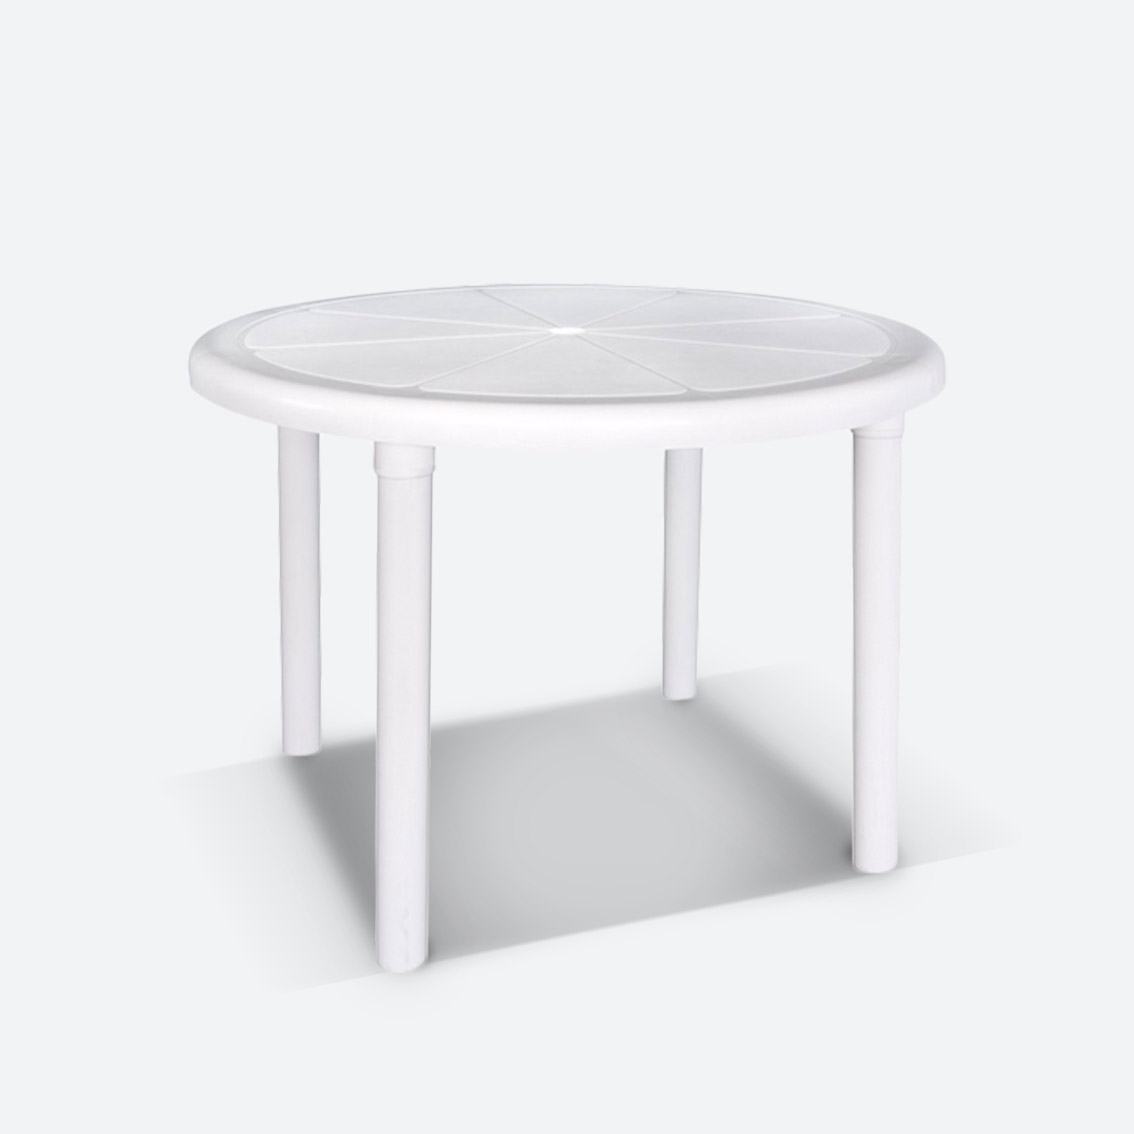 Round Patio Tables Ed The Marquee Man